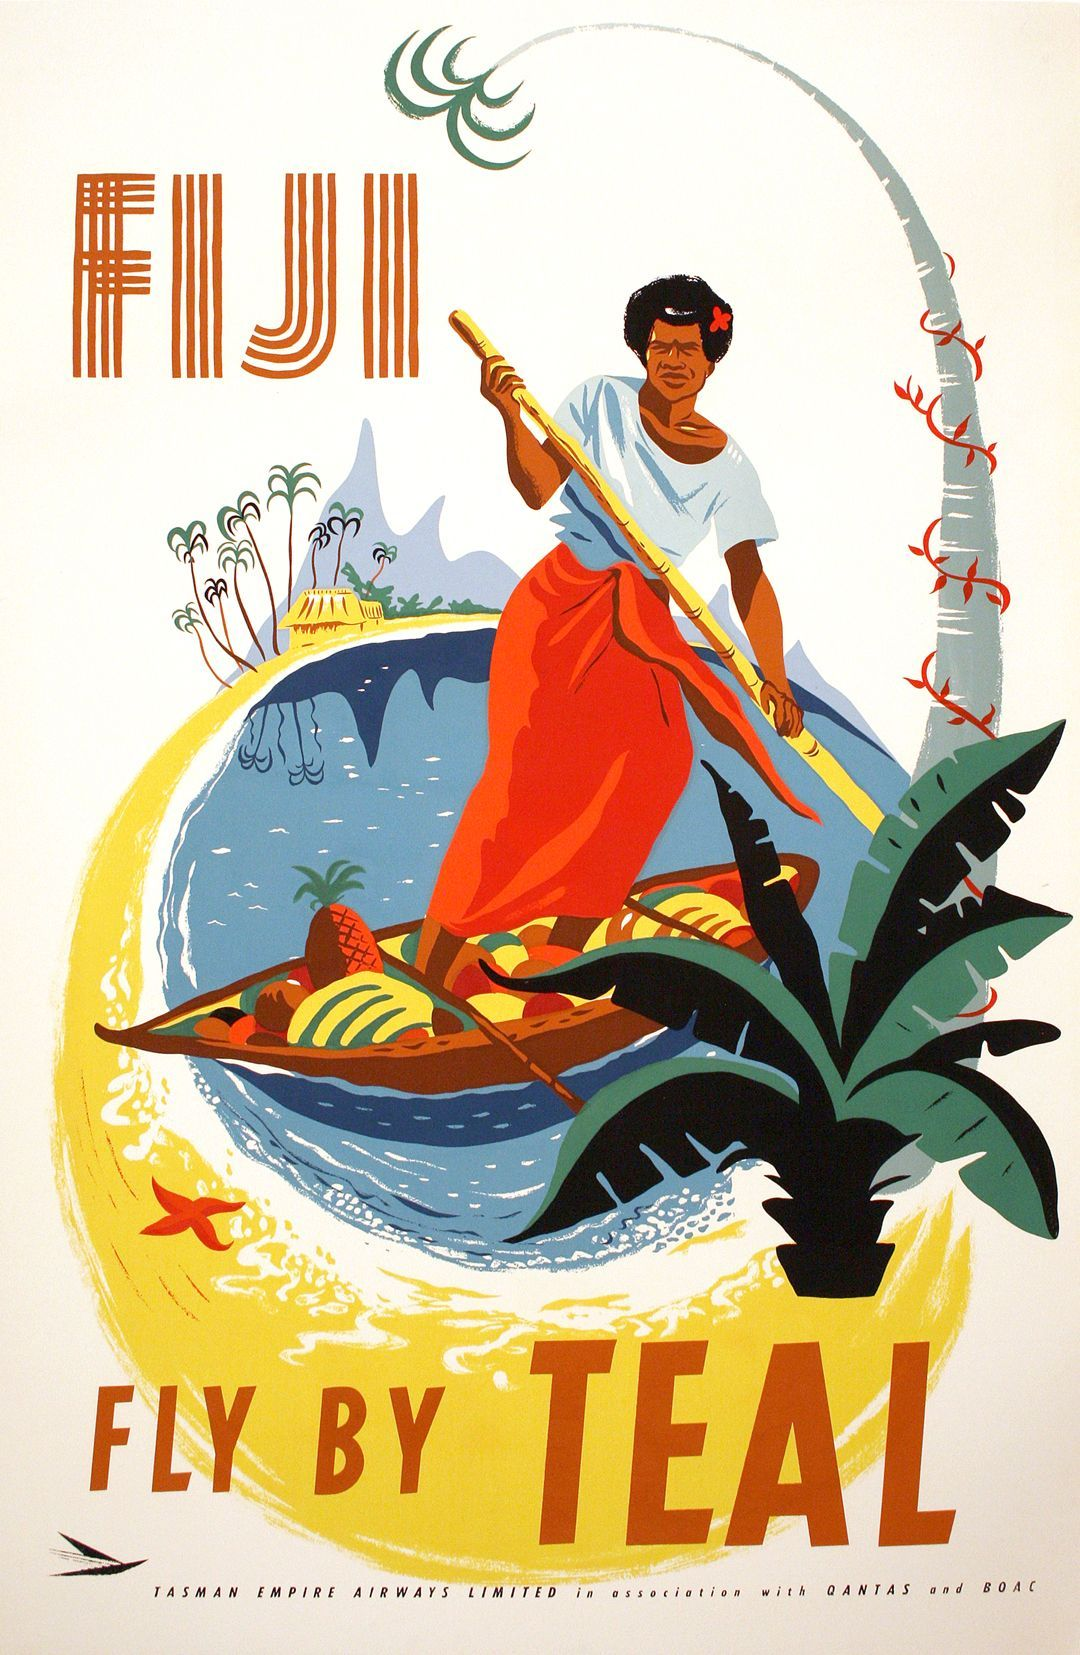 poster Wall art Reproduction. Delta Presents  : Vintage Airline travel advert